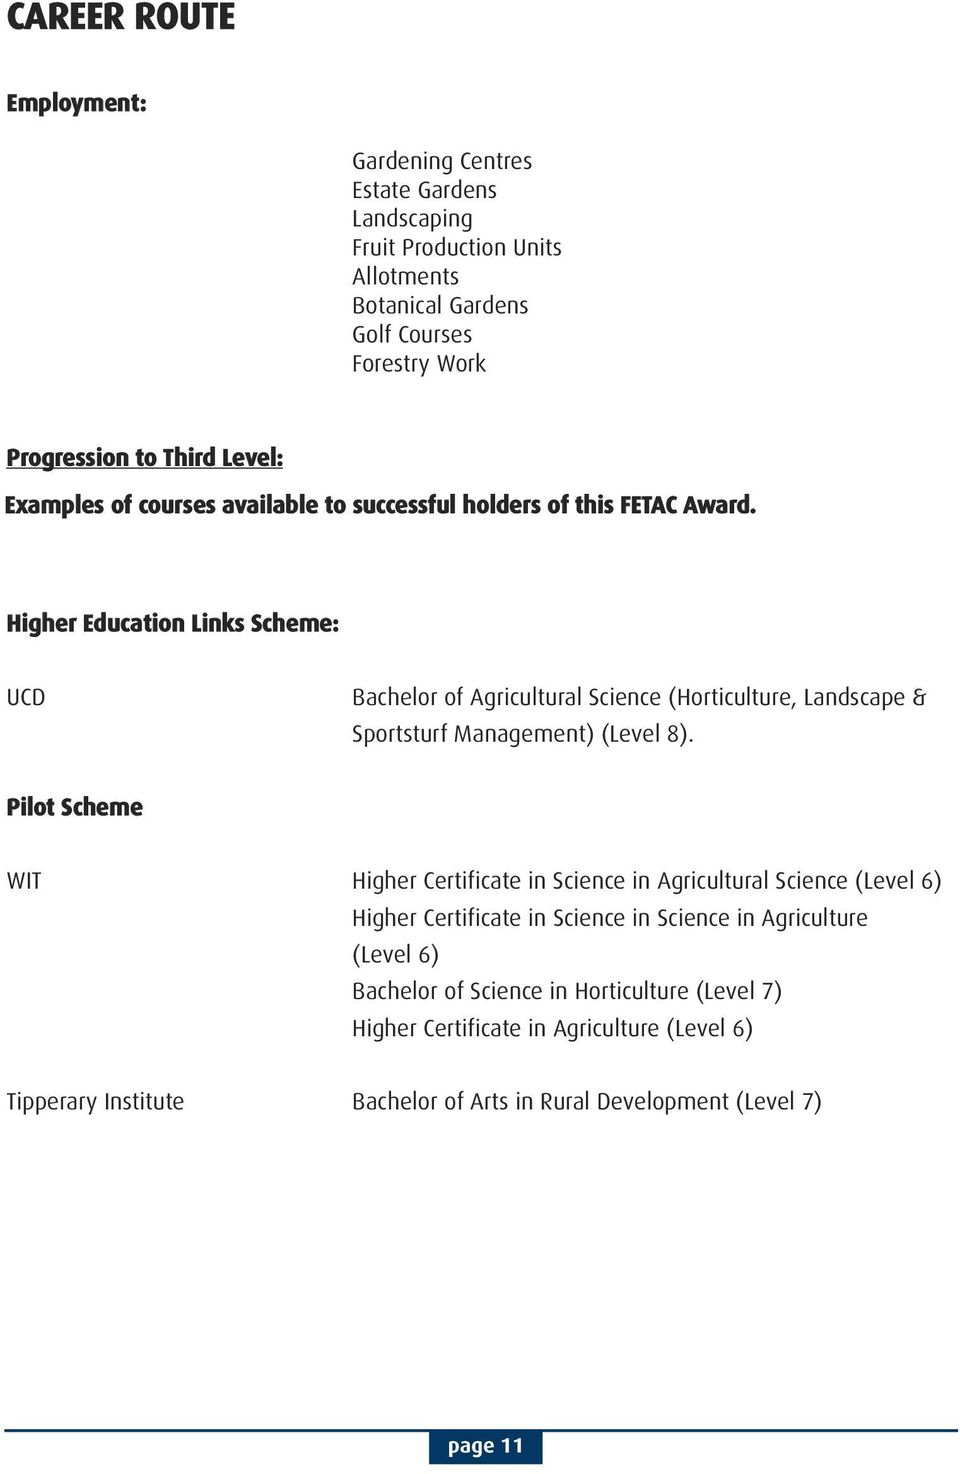 Higher Education Links Scheme: UCD Bachelor of Agricultural Science (Horticulture, Landscape & Sportsturf Management) (Level 8).